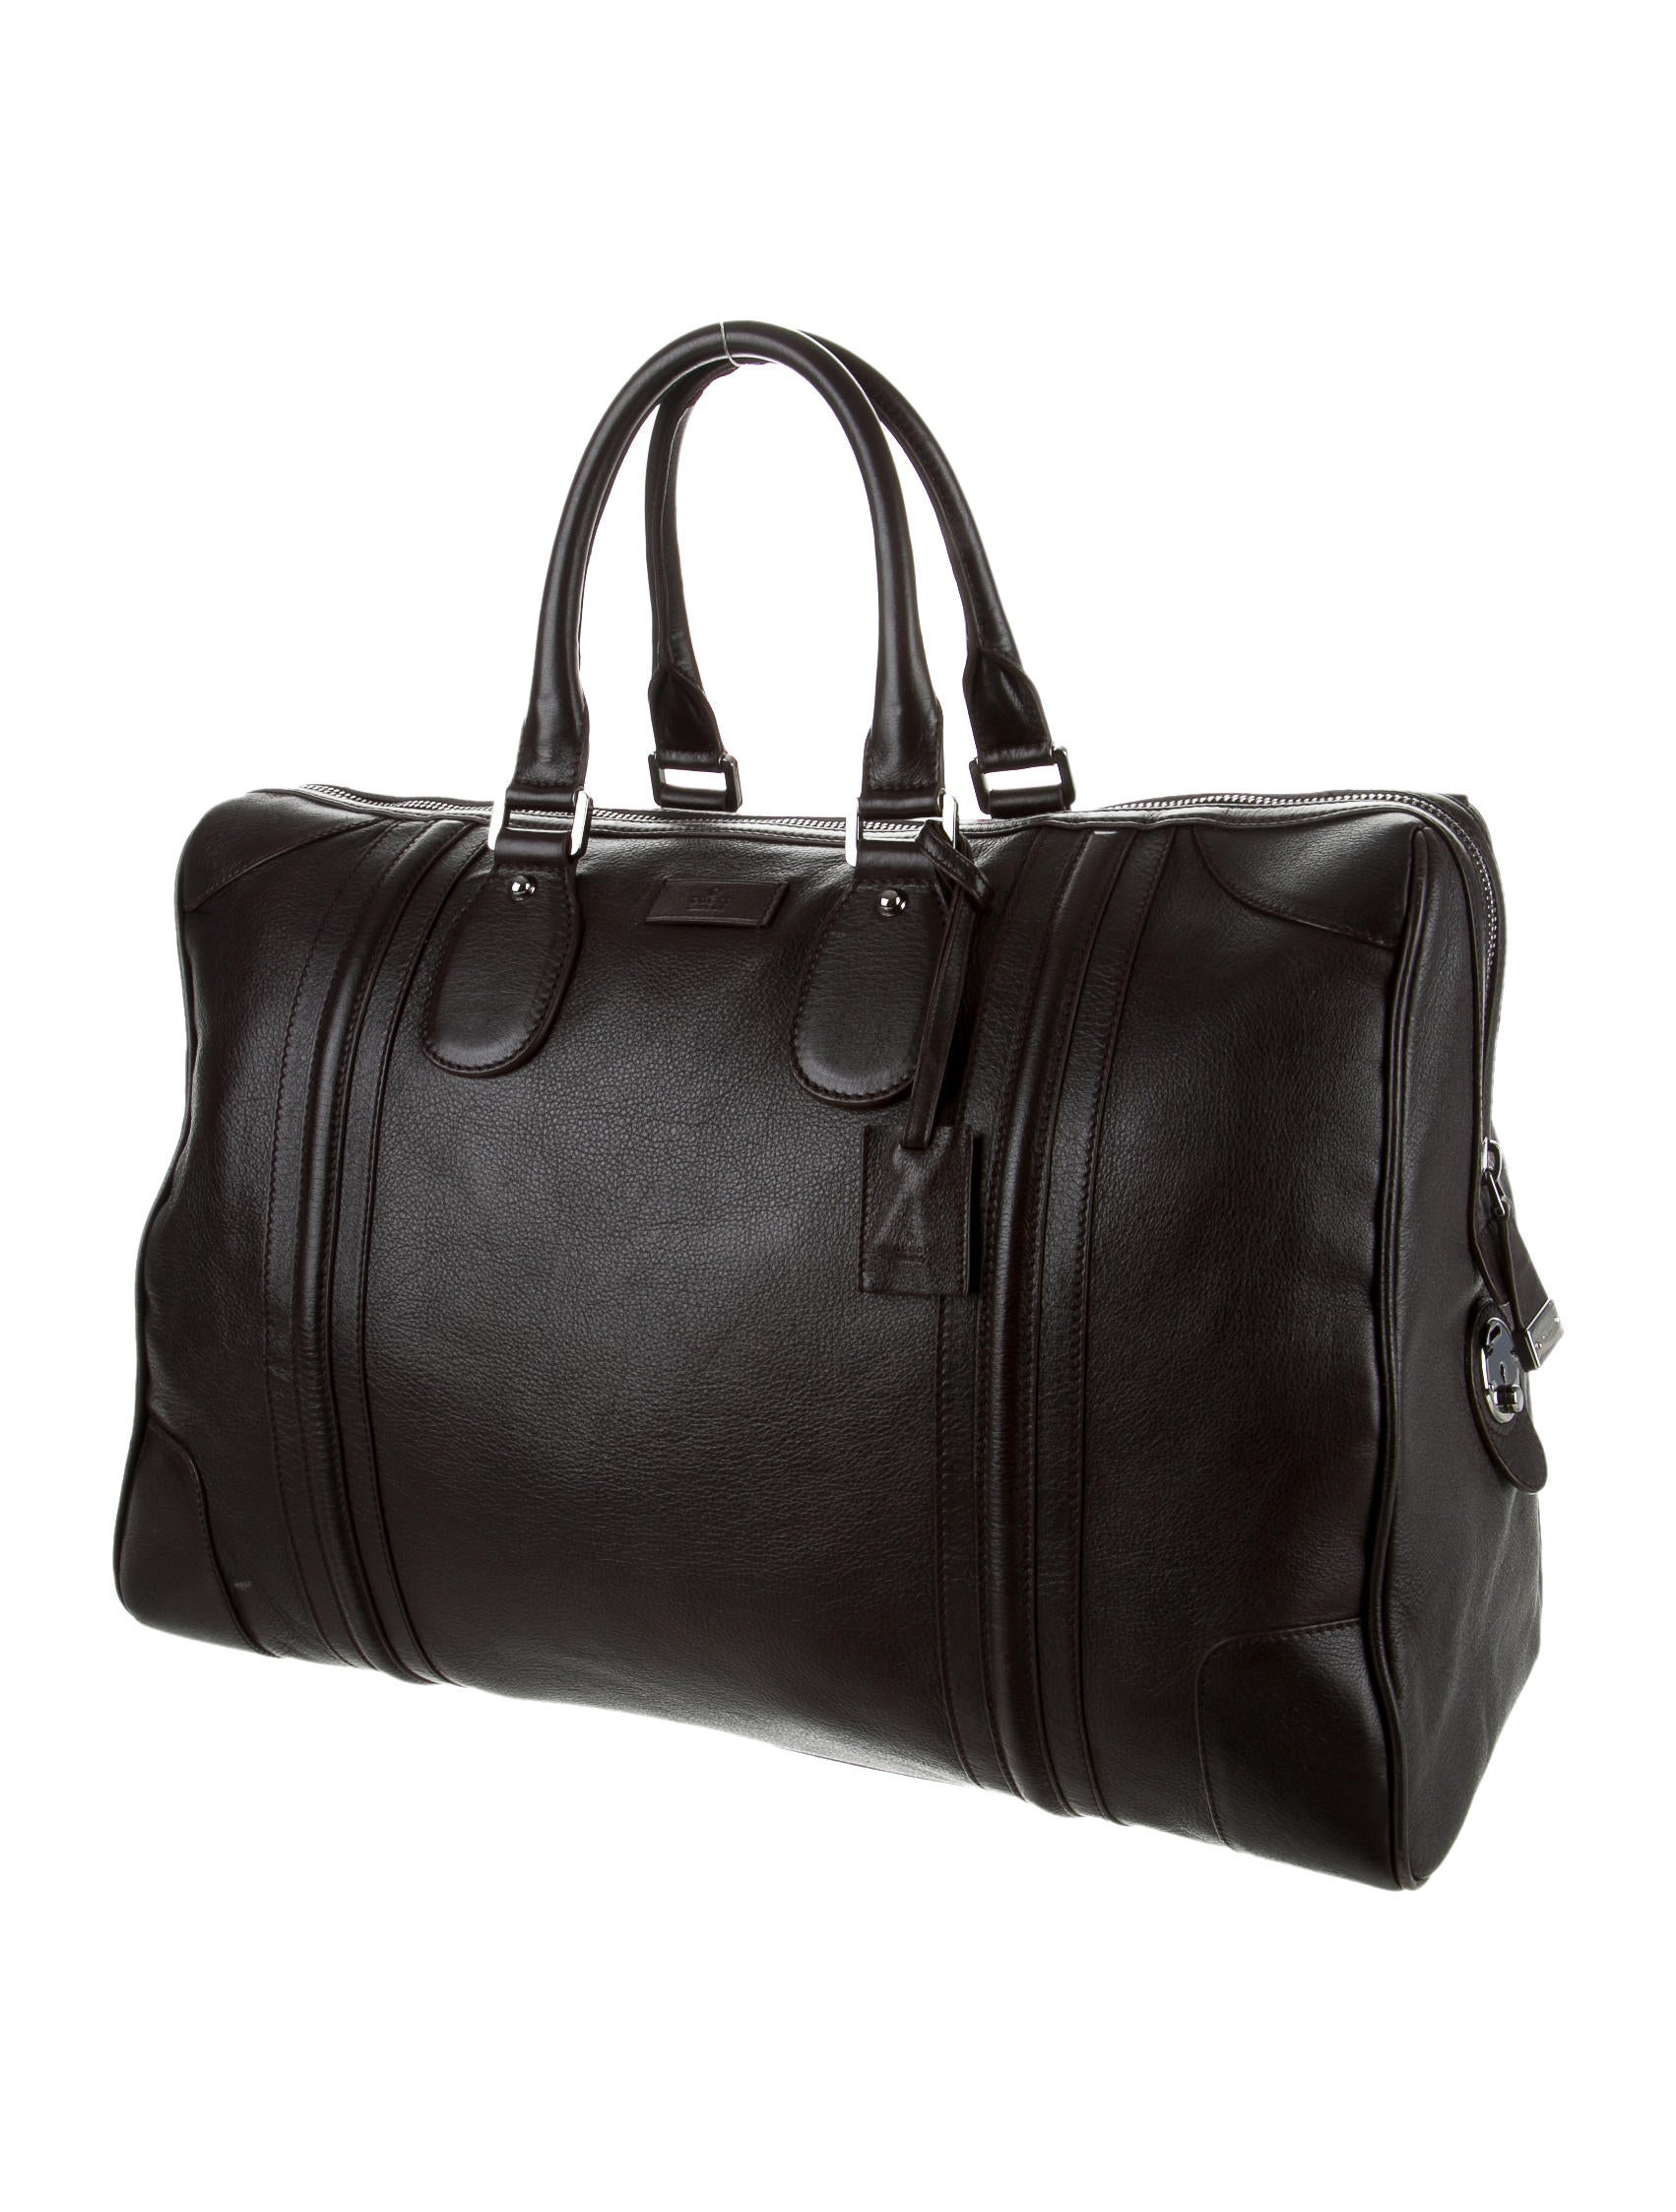 d6ec4825b6df Mens Gucci Duffle Bag Sale | Stanford Center for Opportunity Policy ...